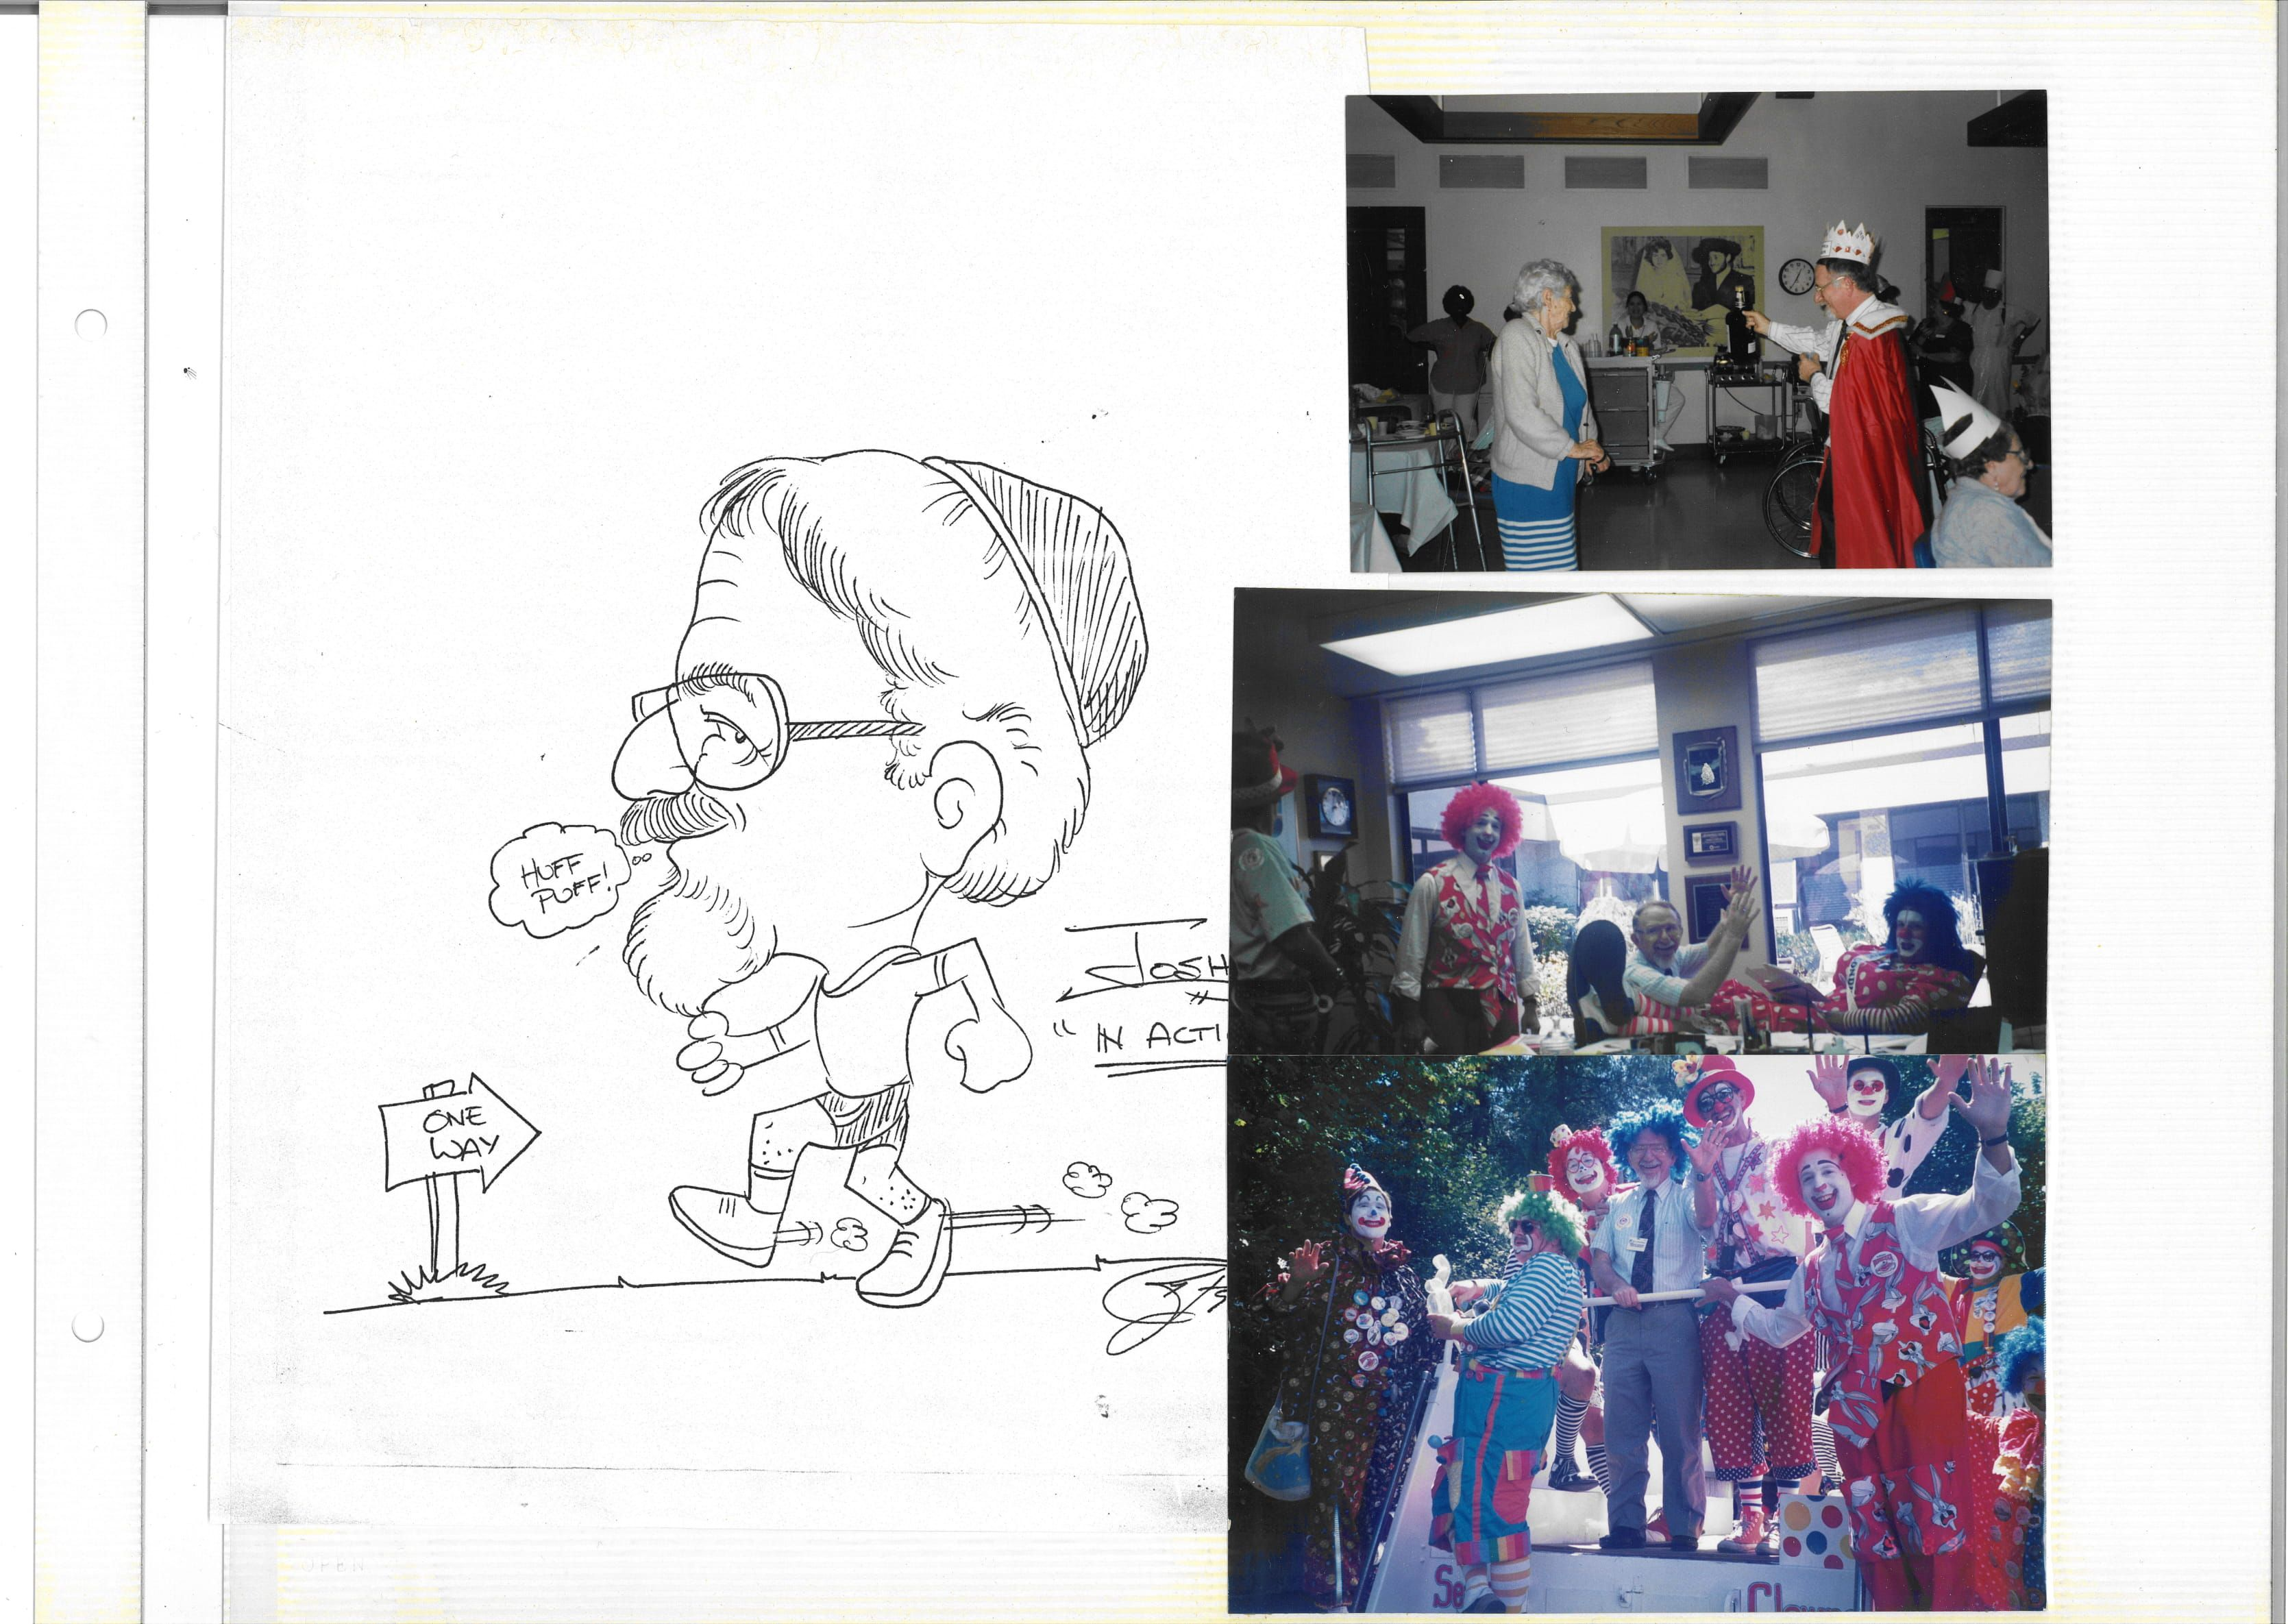 Sketch and photos from Seafair